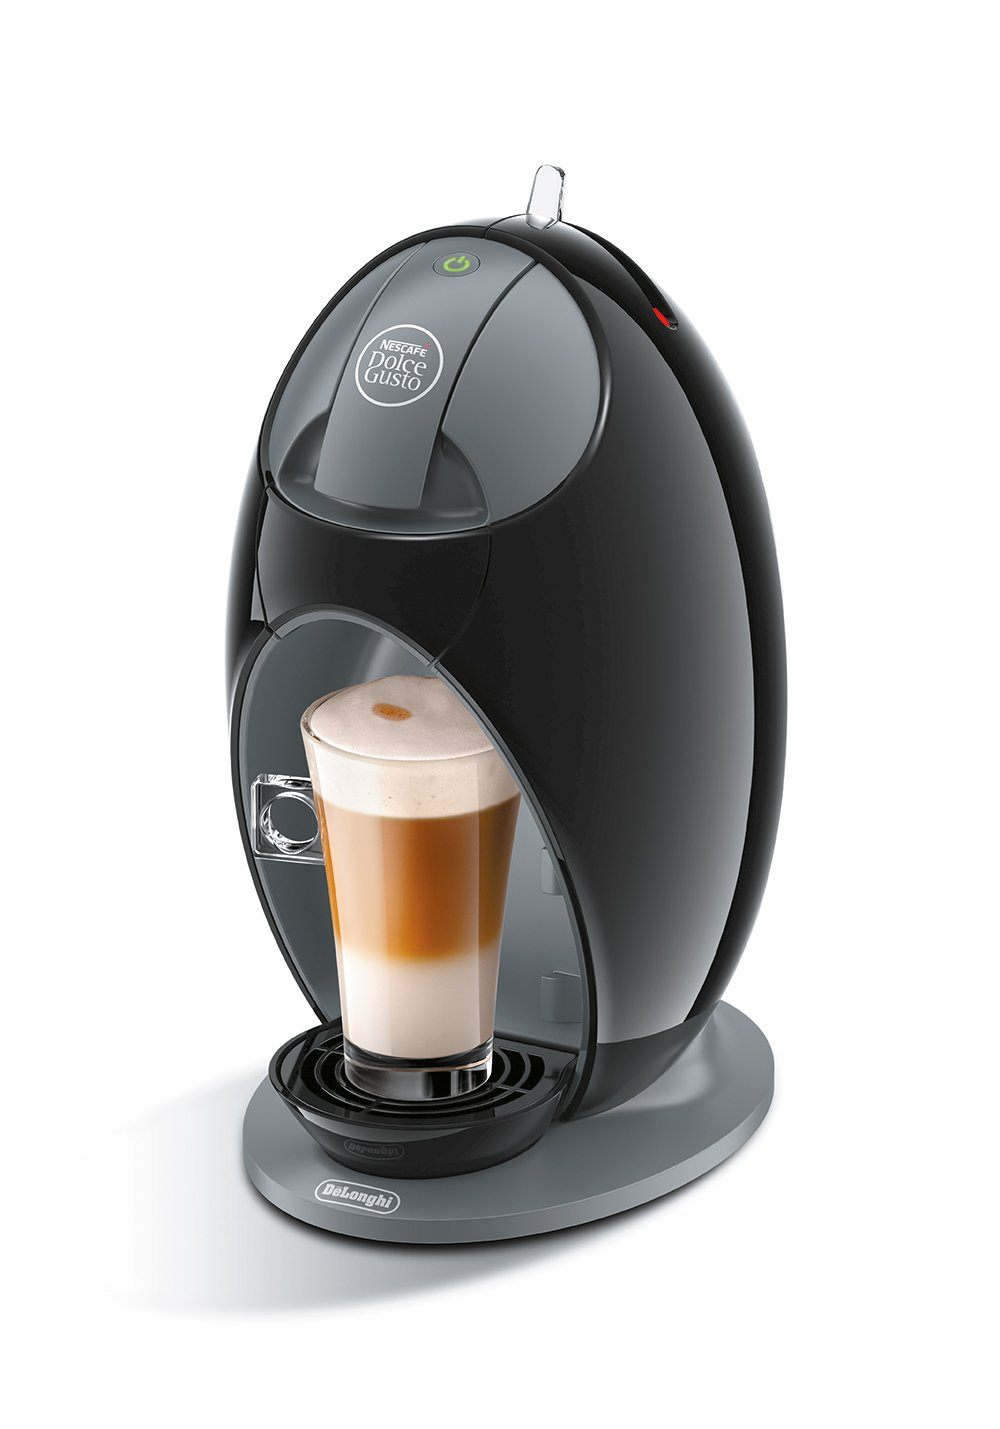 nescaf dolce gusto coffee machine edg250 b jovia manual coffee by de 39 longhi. Black Bedroom Furniture Sets. Home Design Ideas